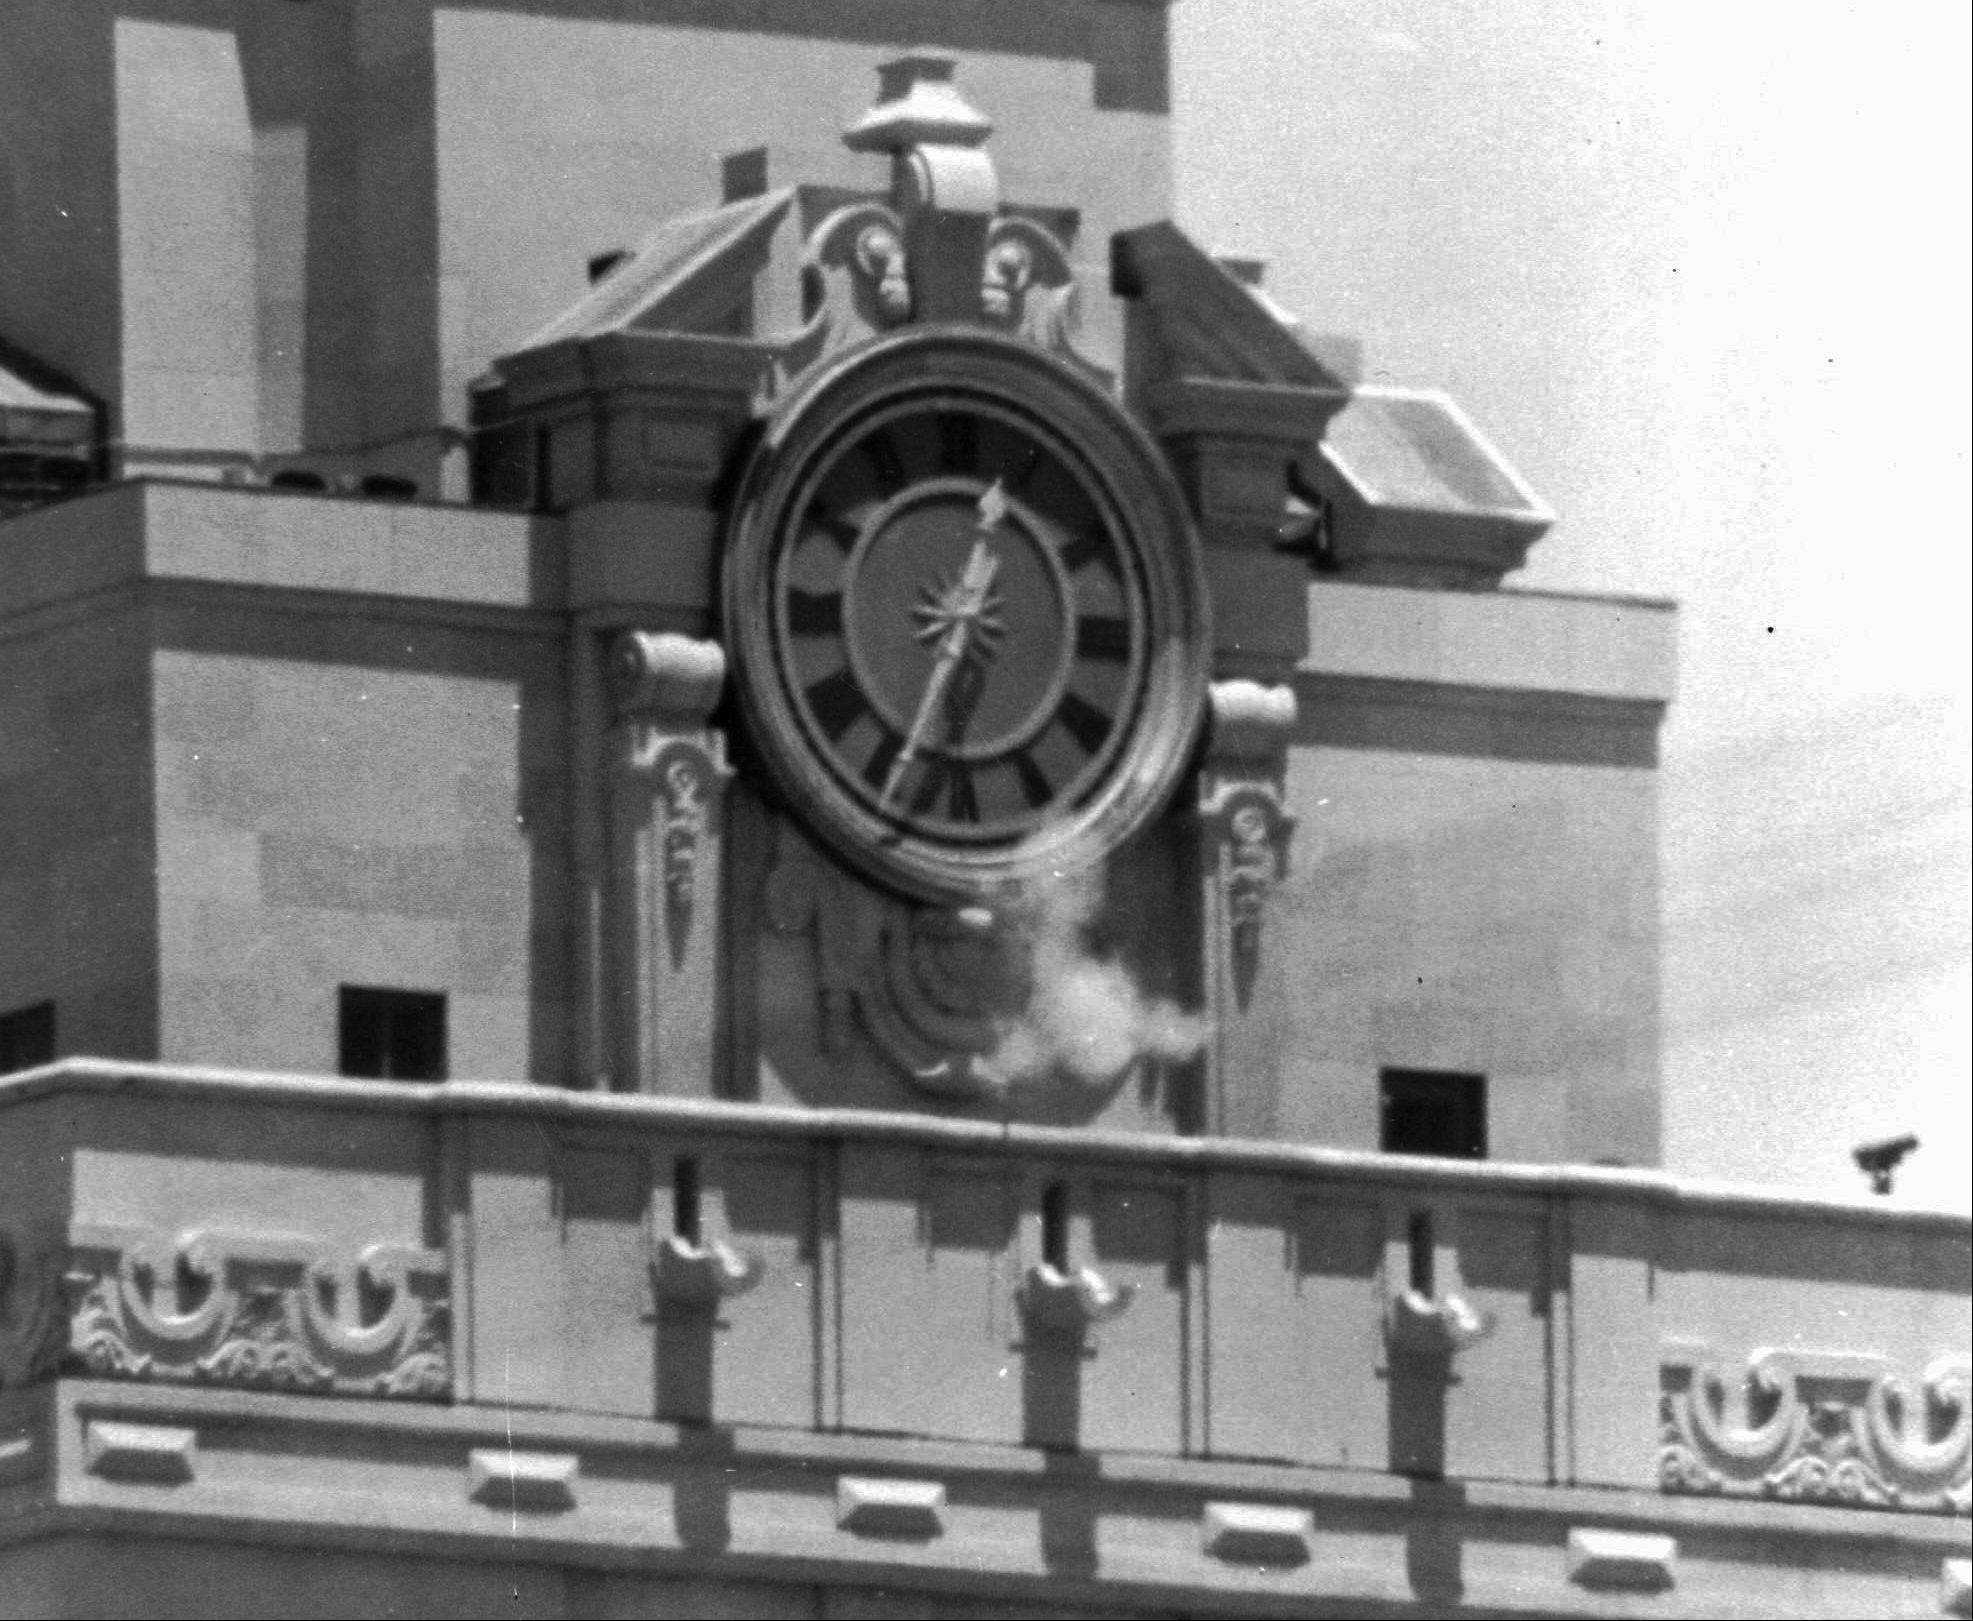 "Smoke rises from a sniper's gun as he fires from the tower of the University of Texas administration building in Austin, Texas at people below. Grant Duwe, a criminologist with the Minnesota Department of Corrections, says, ""Mass shootings provoke instant debates about violence and guns and mental health and that's been the case since Charles Whitman climbed the tower at the University of Texas in 1966."" The engineering student and former Marine killed 13 people and an unborn child and wounded 32 others in the shooting."